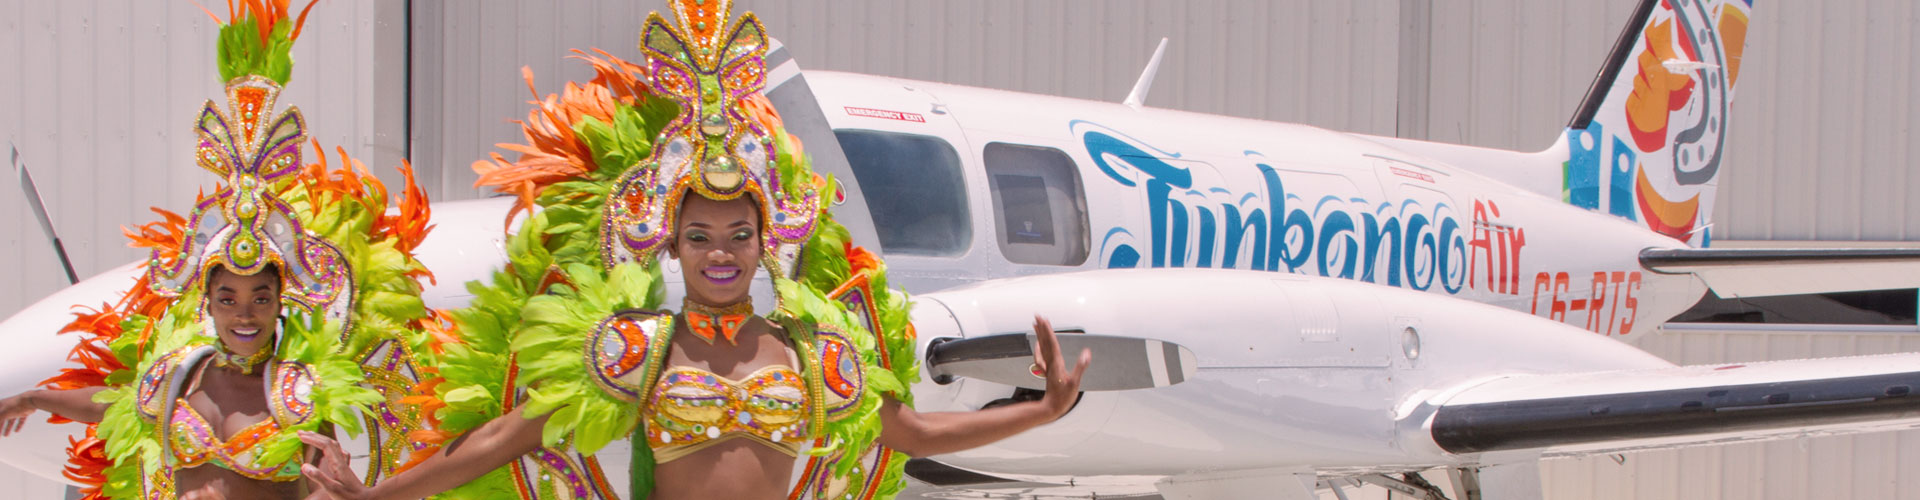 The Best Bahamas's Low Cost Carrier